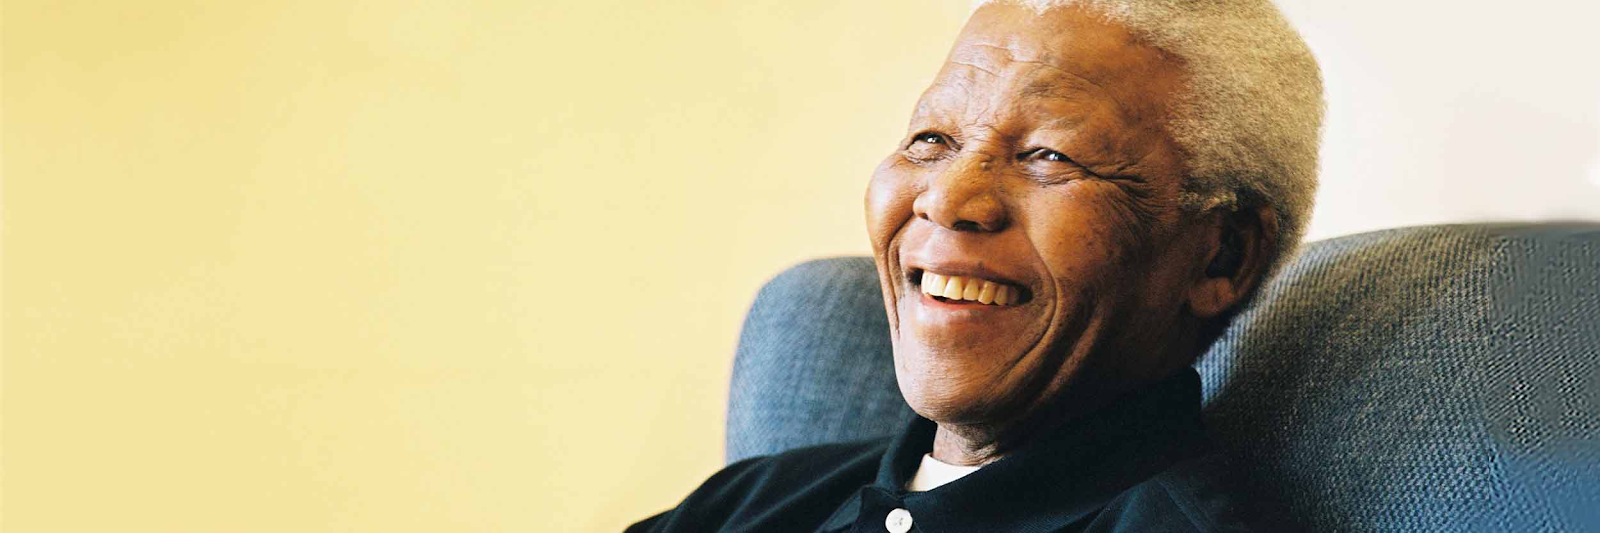 Remembering Nelson Mandela and His Vision of Freedom